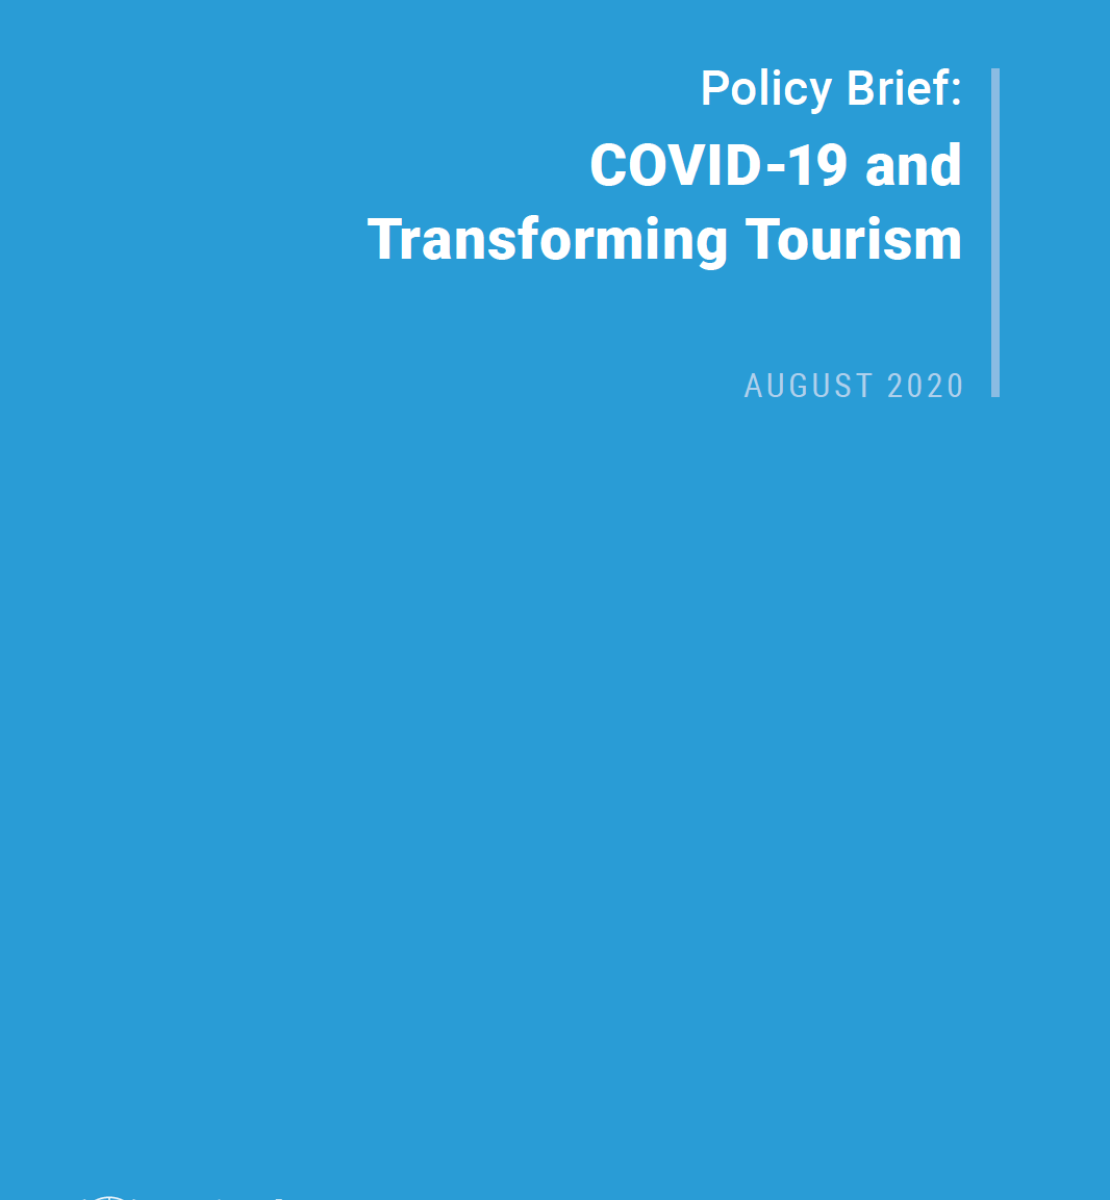 """Cover shows the title """"Policy Brief: COVID-19 and Transforming Tourism"""" against a solid blue background with the UN emblem on the lower left side."""